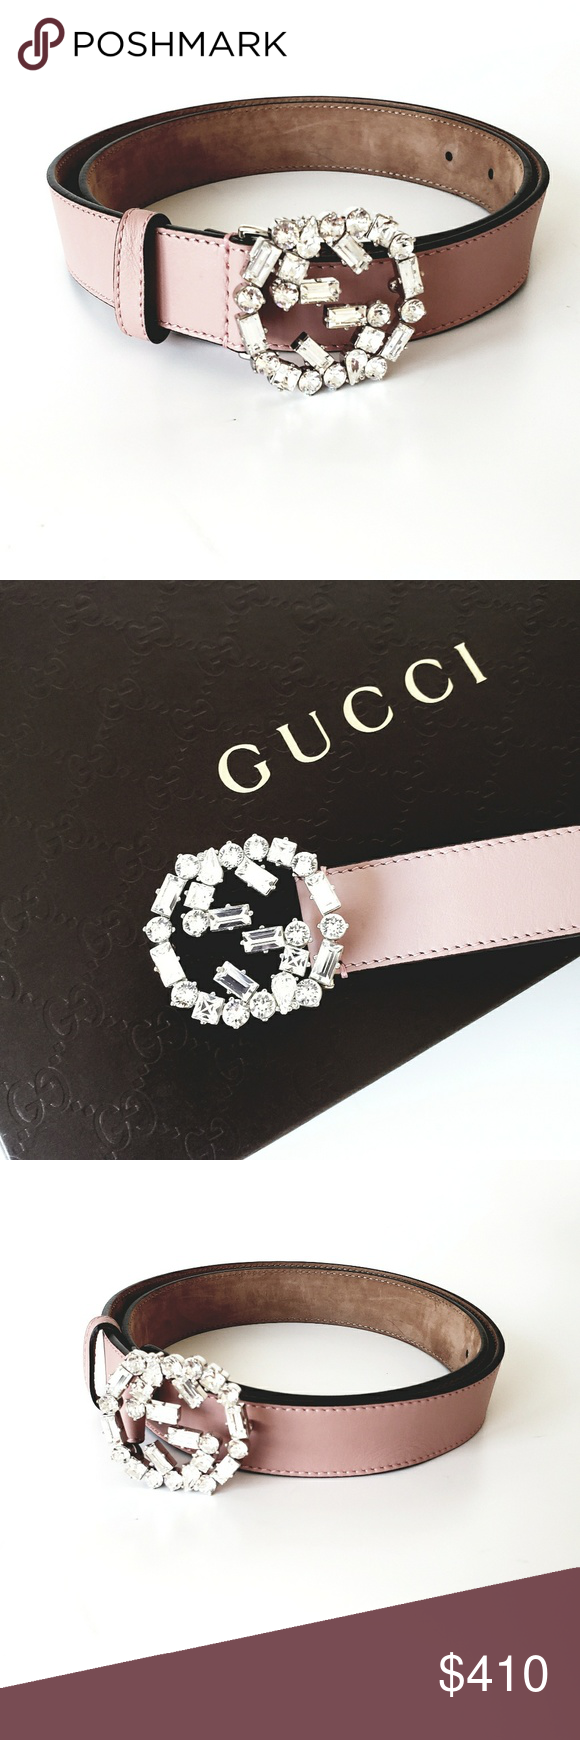 4eaf37a649f Spotted while shopping on Poshmark  Gucci Cristal Interlocking Women s  Leather Belt!  poshmark  fashion  shopping  style  Gucci  Accessories